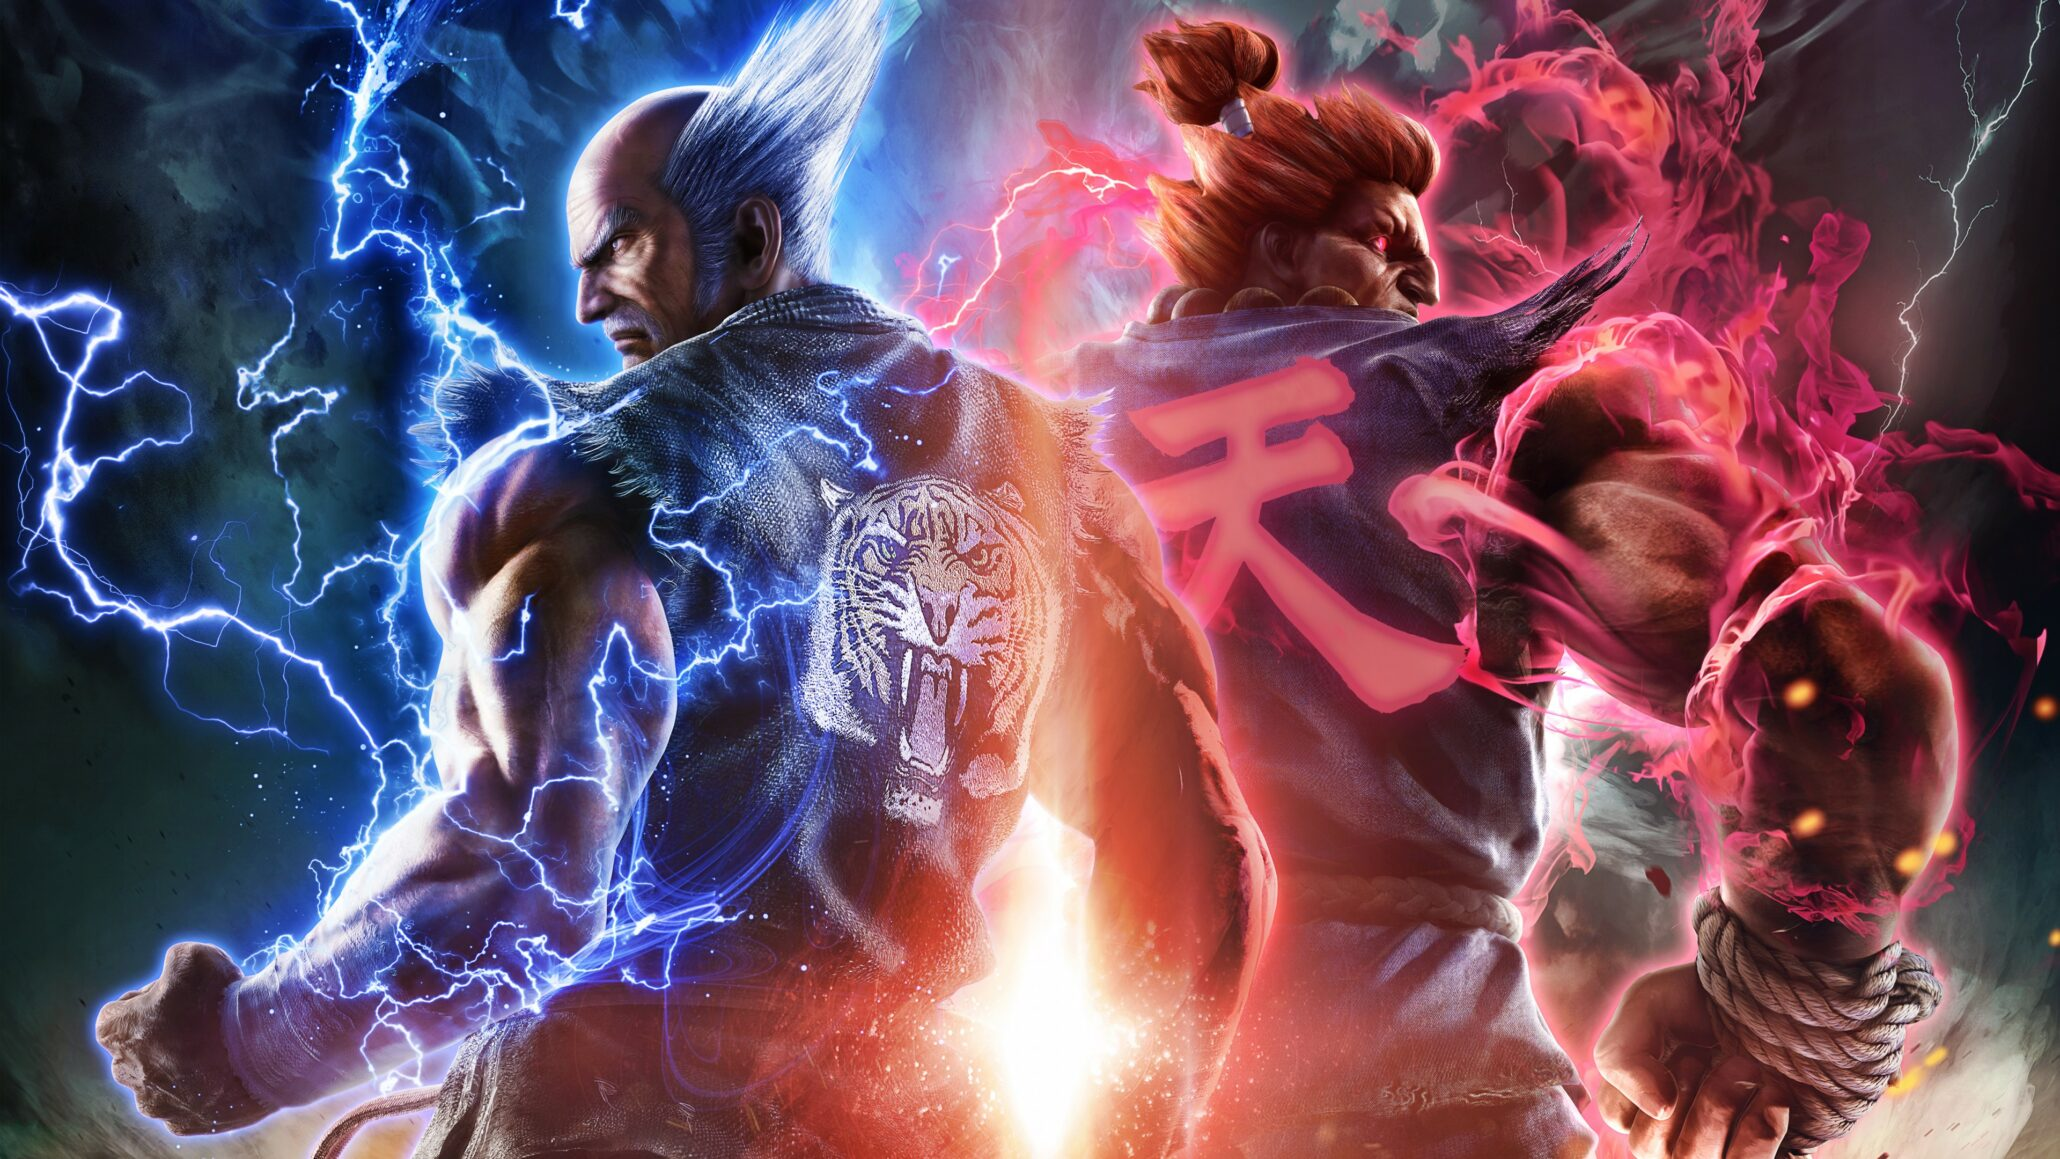 Tekken 7 Director Says Denuvo DRM Is Causing Performance Issues In